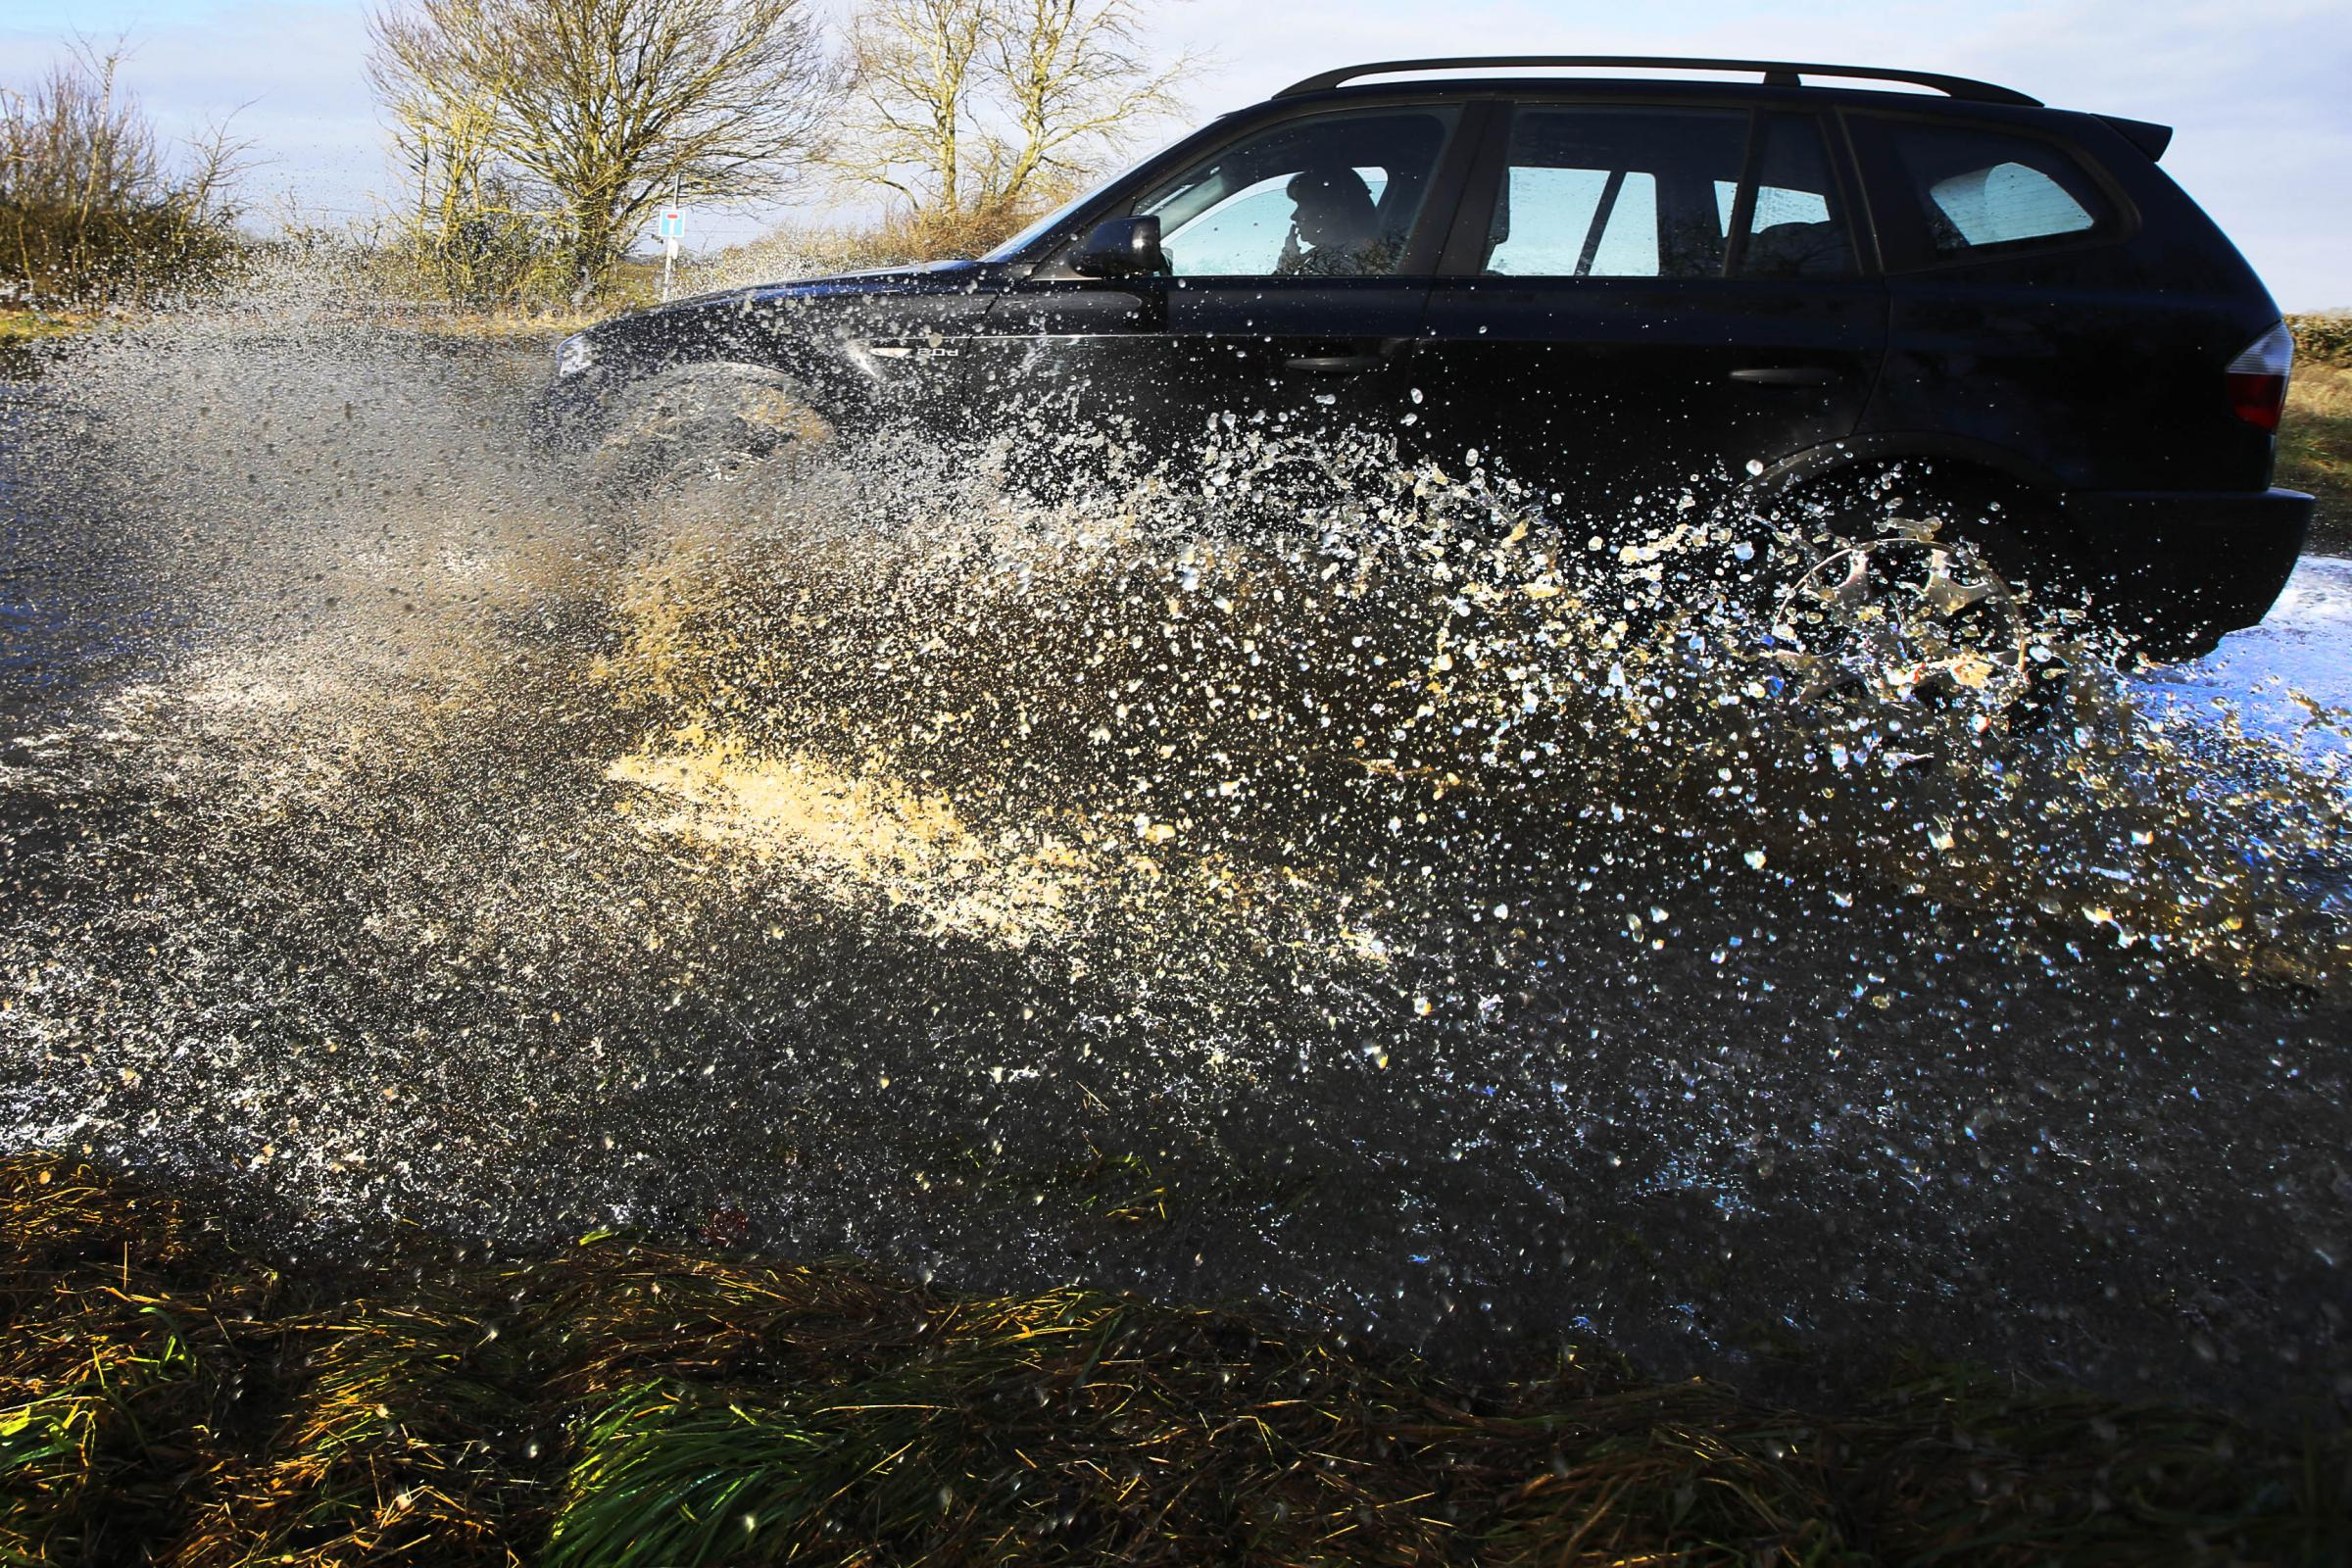 Splashing people in your car 'is not funny' and you could get fined